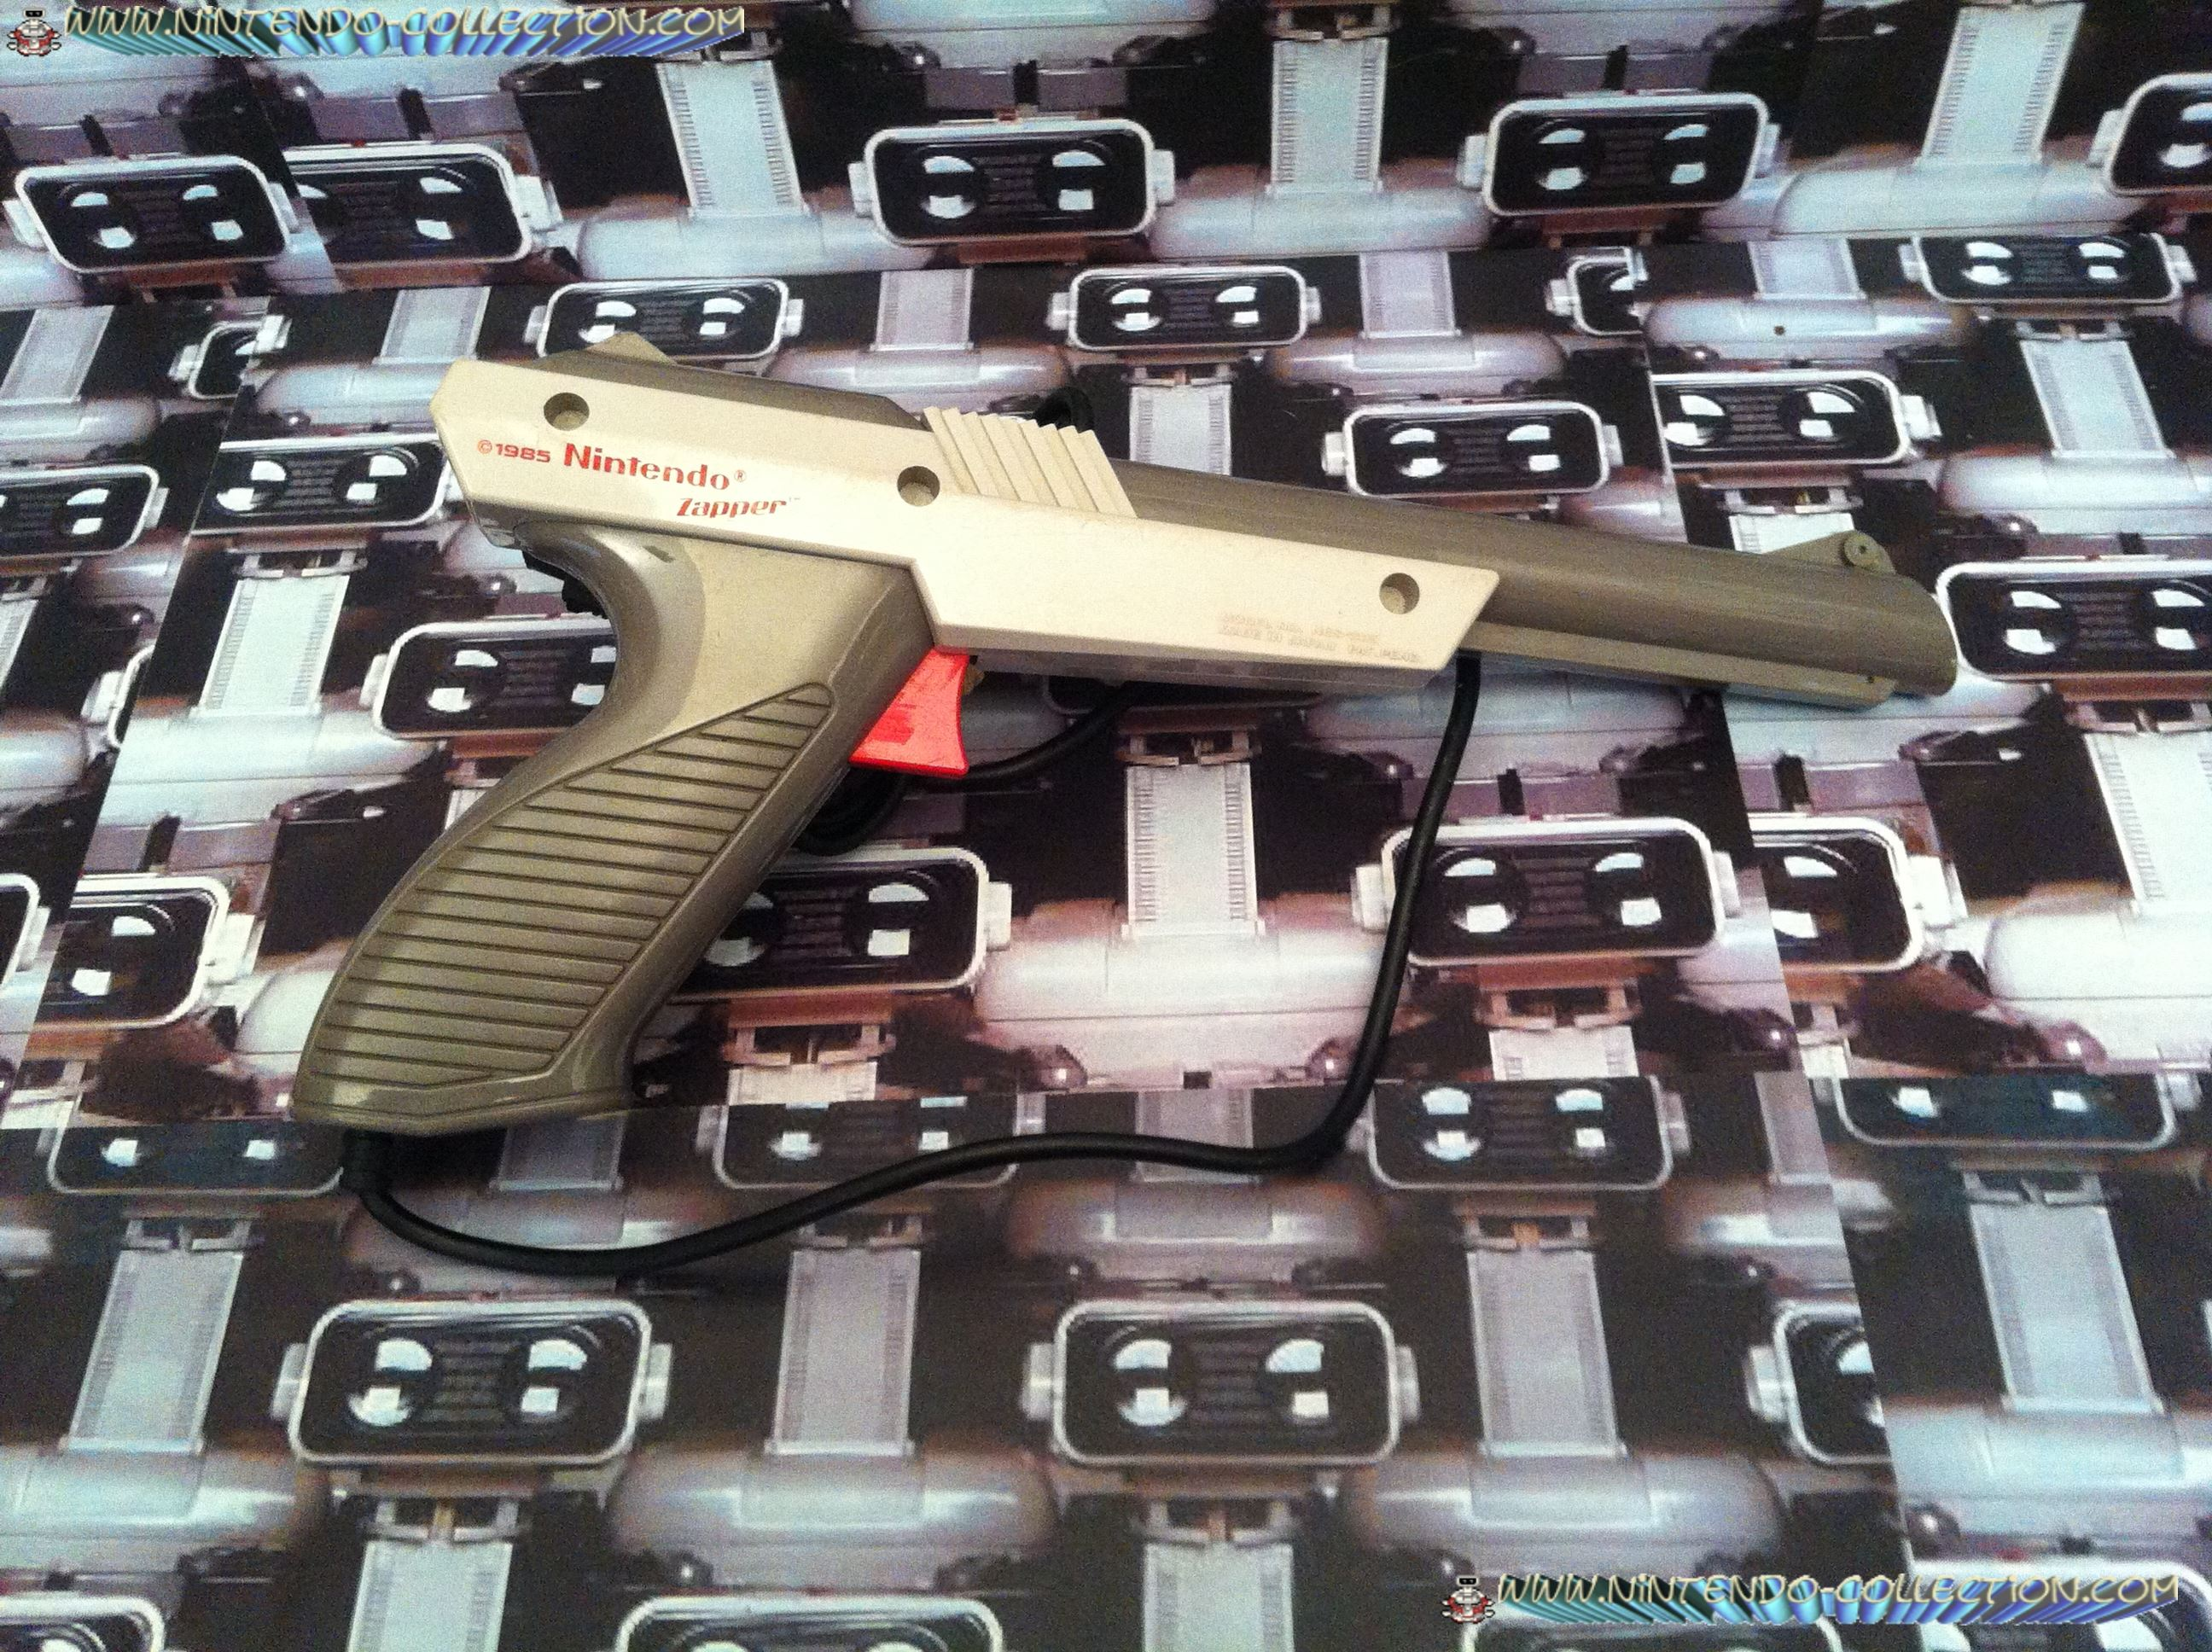 www.nintendo-collection.com - NES Zapper Gris Grey